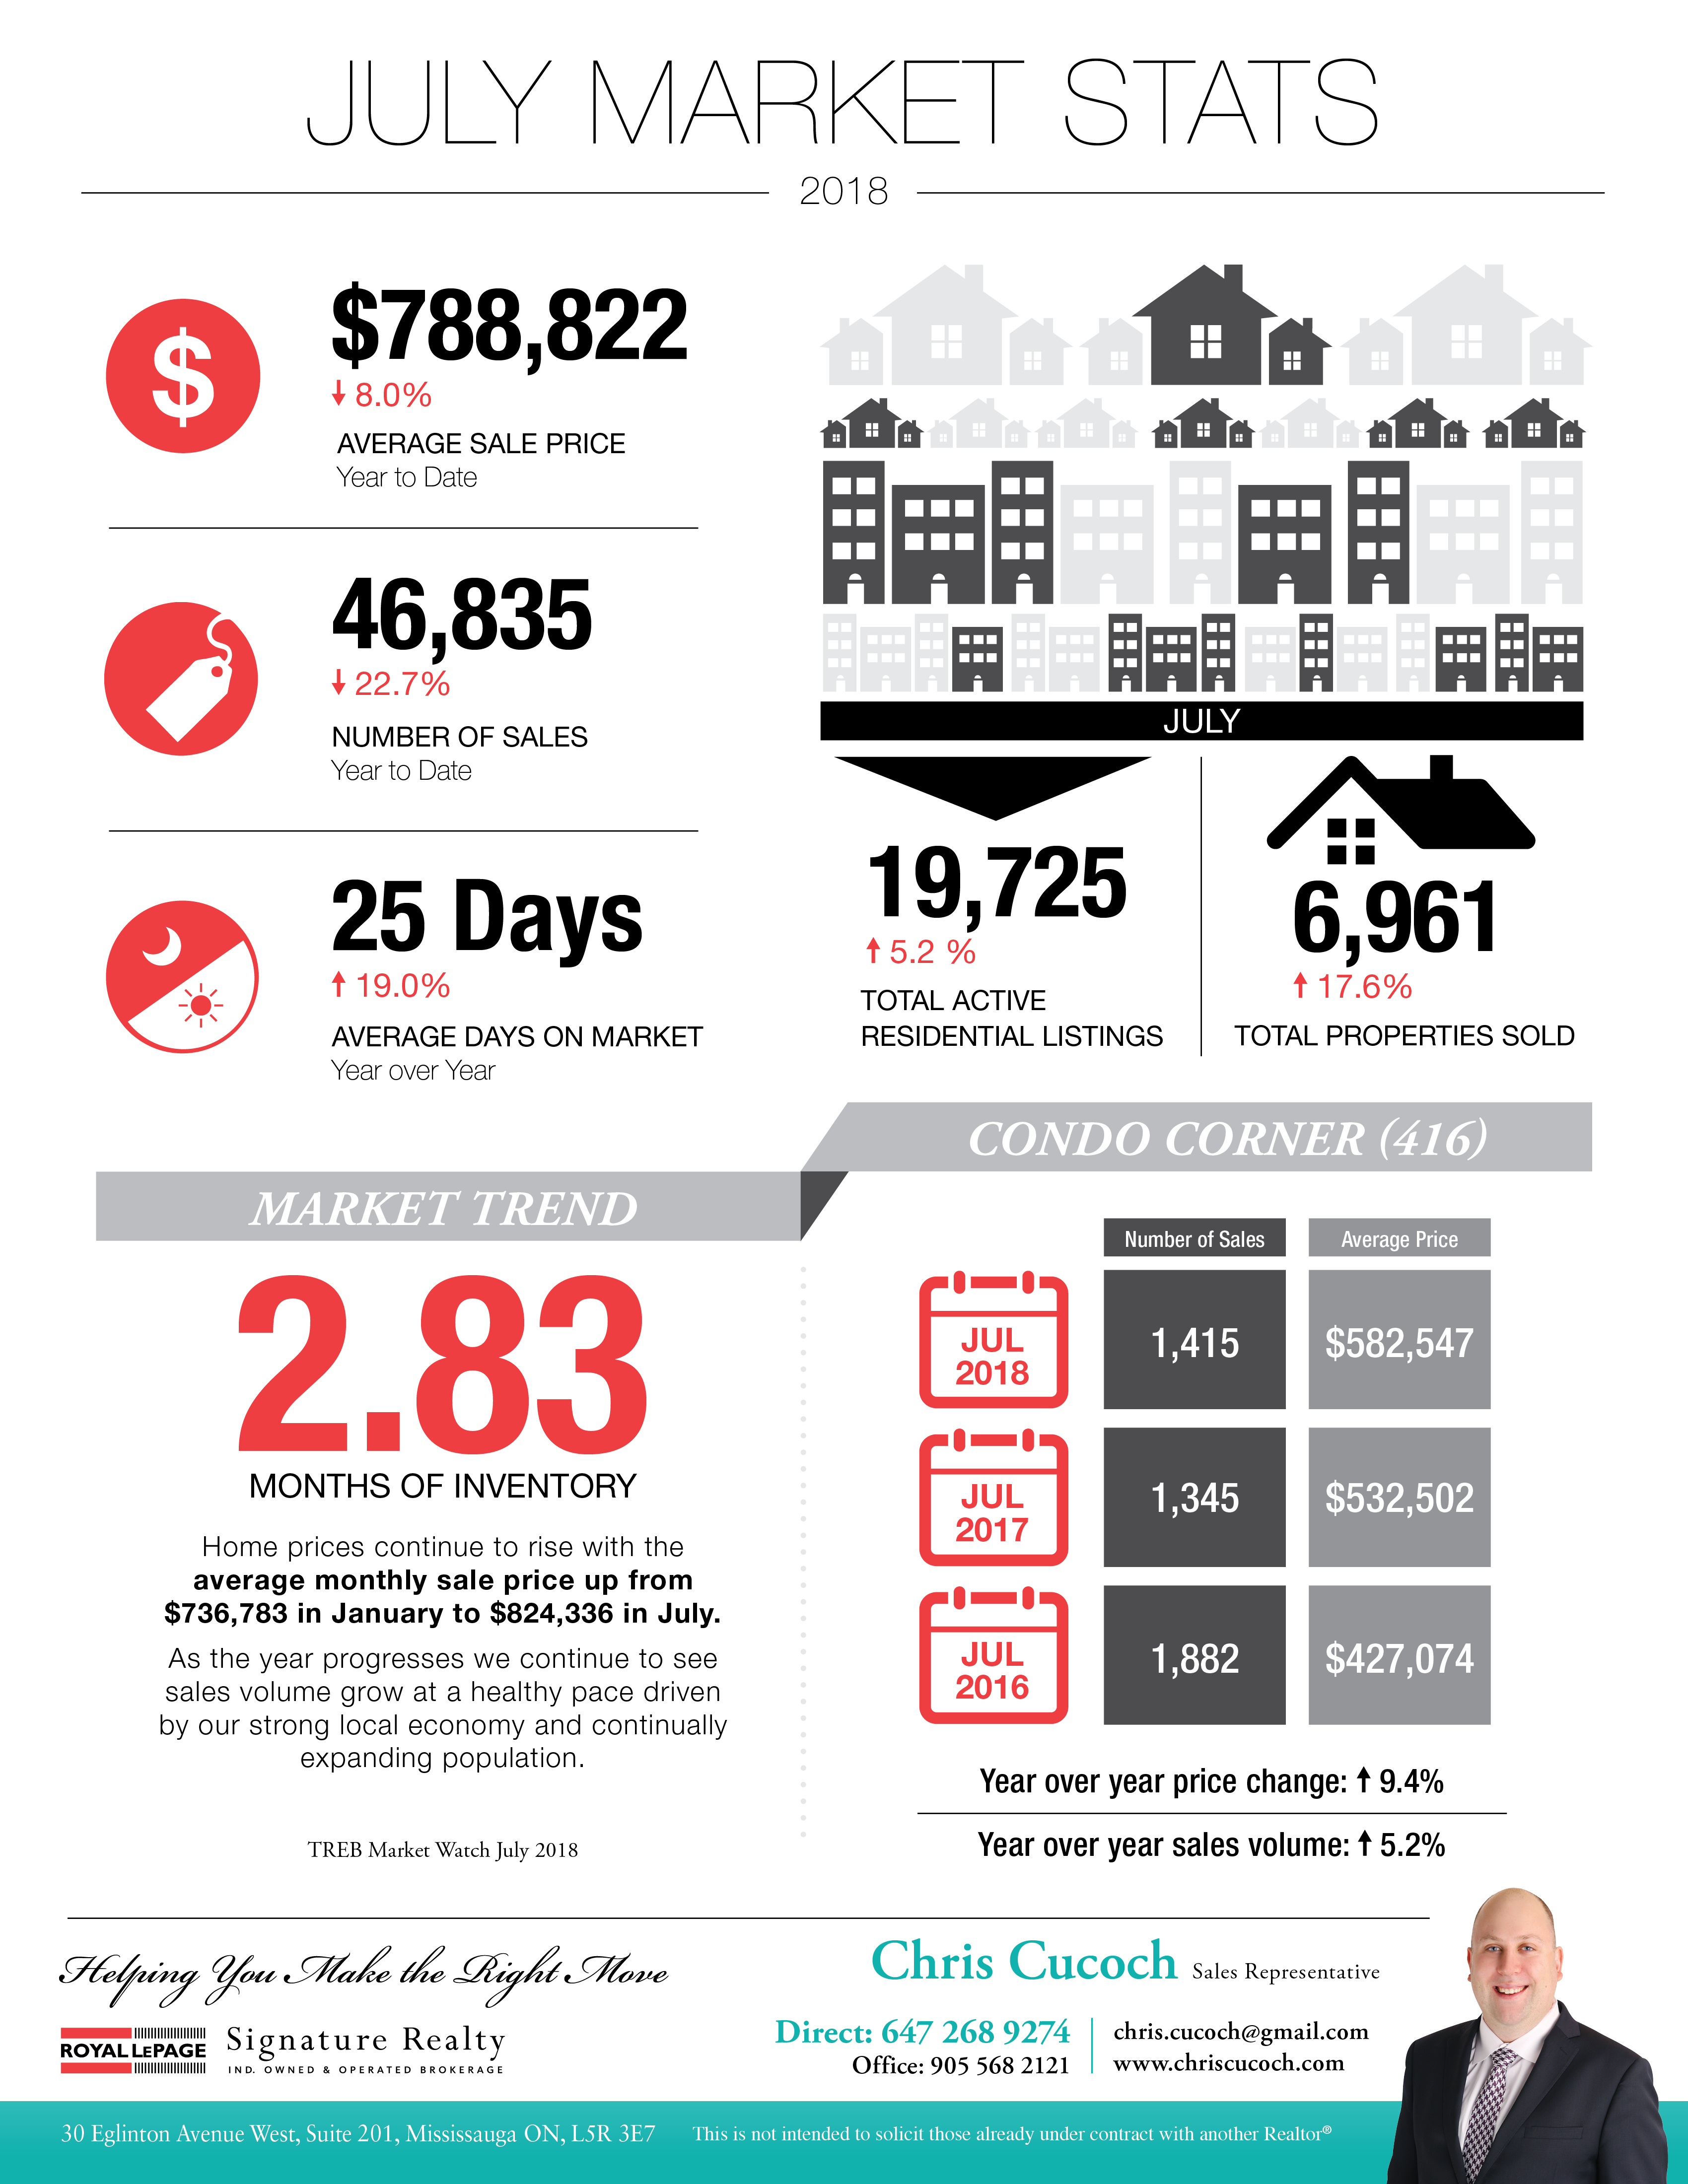 Toronto Real Estate Market Statistics Infographic for July 2018